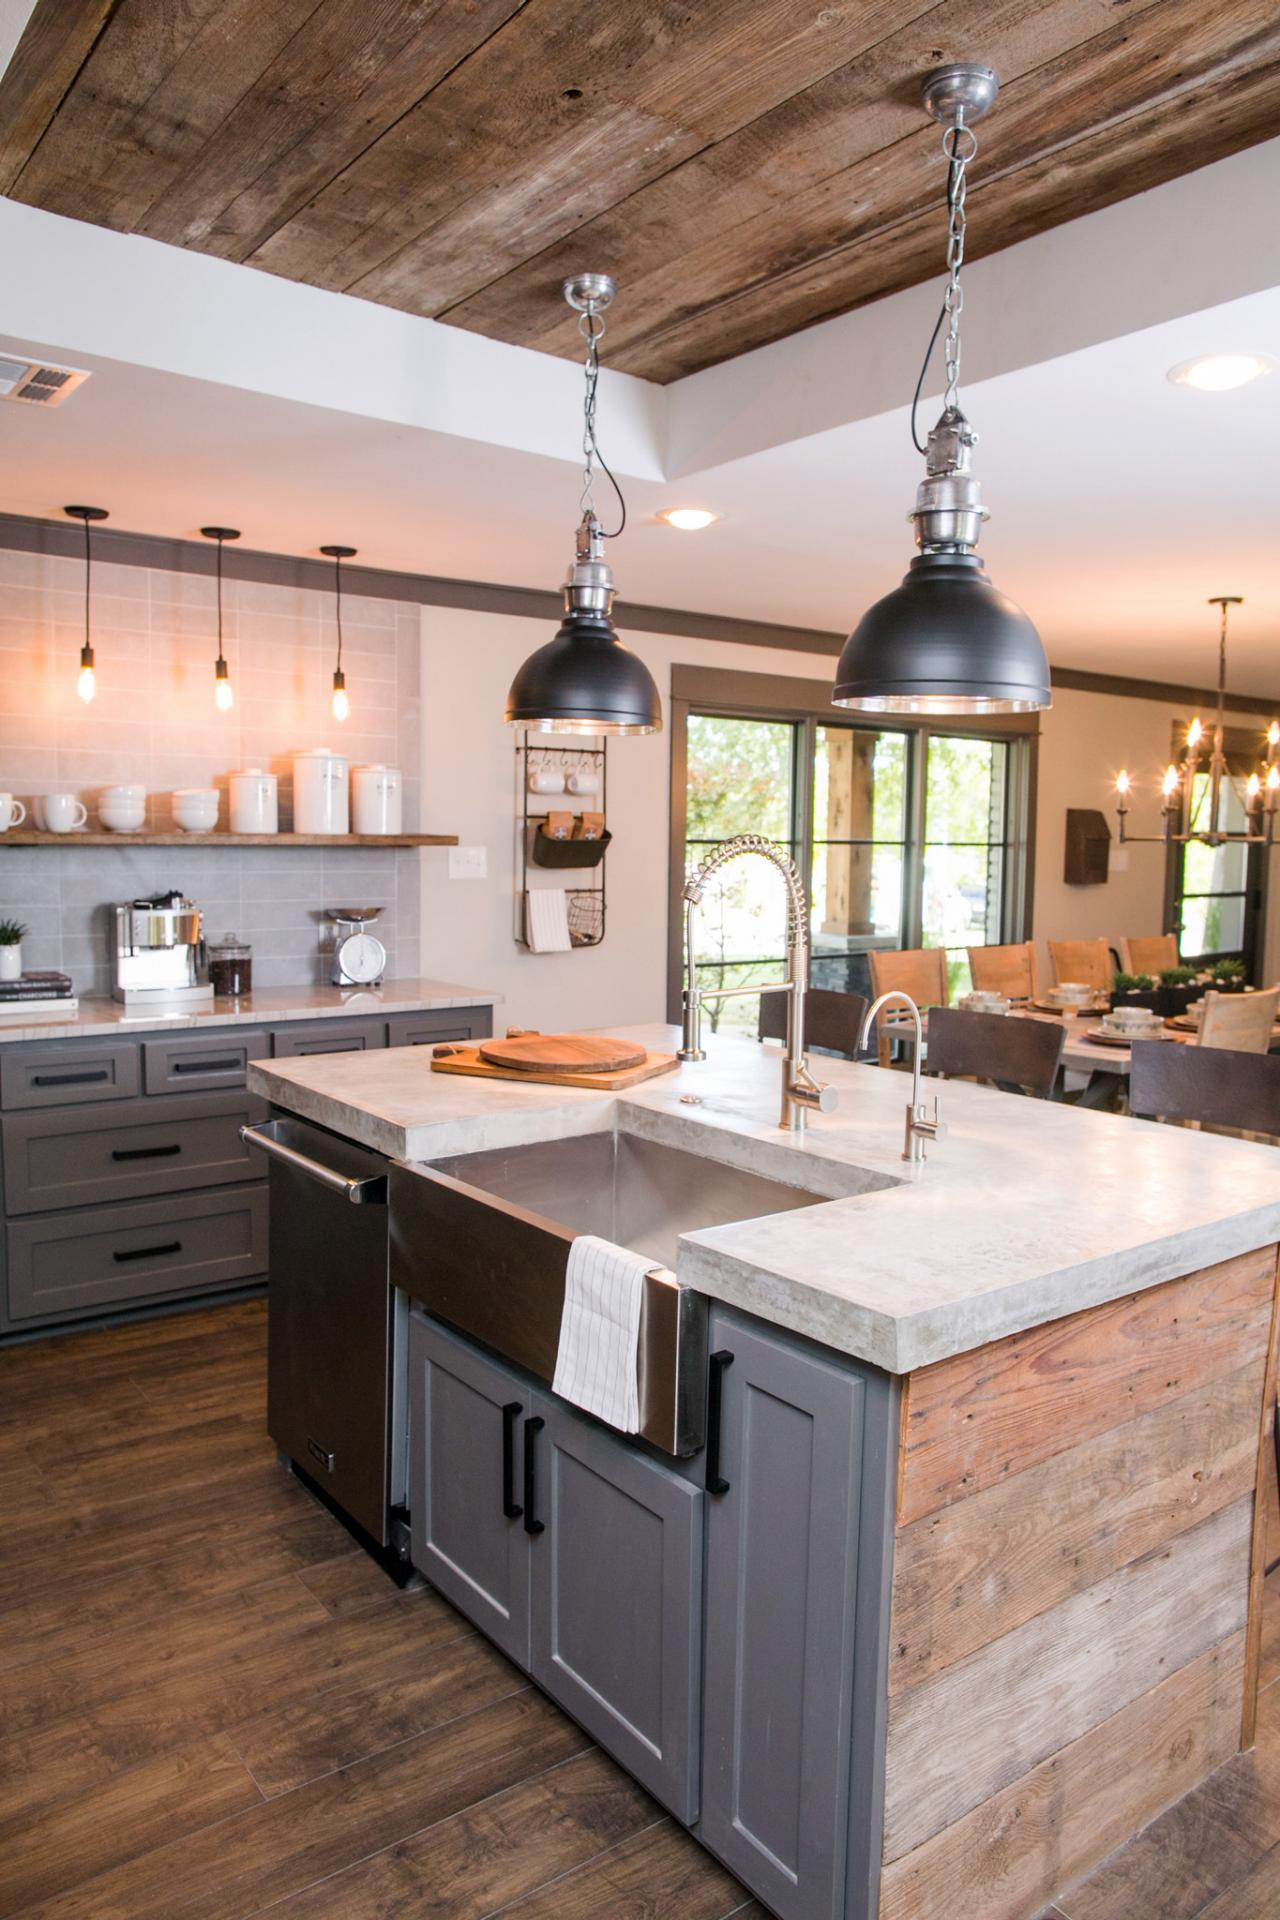 Fixer upper kitchen pendants - Fixer Upper Kitchen Lighting Kitchen After